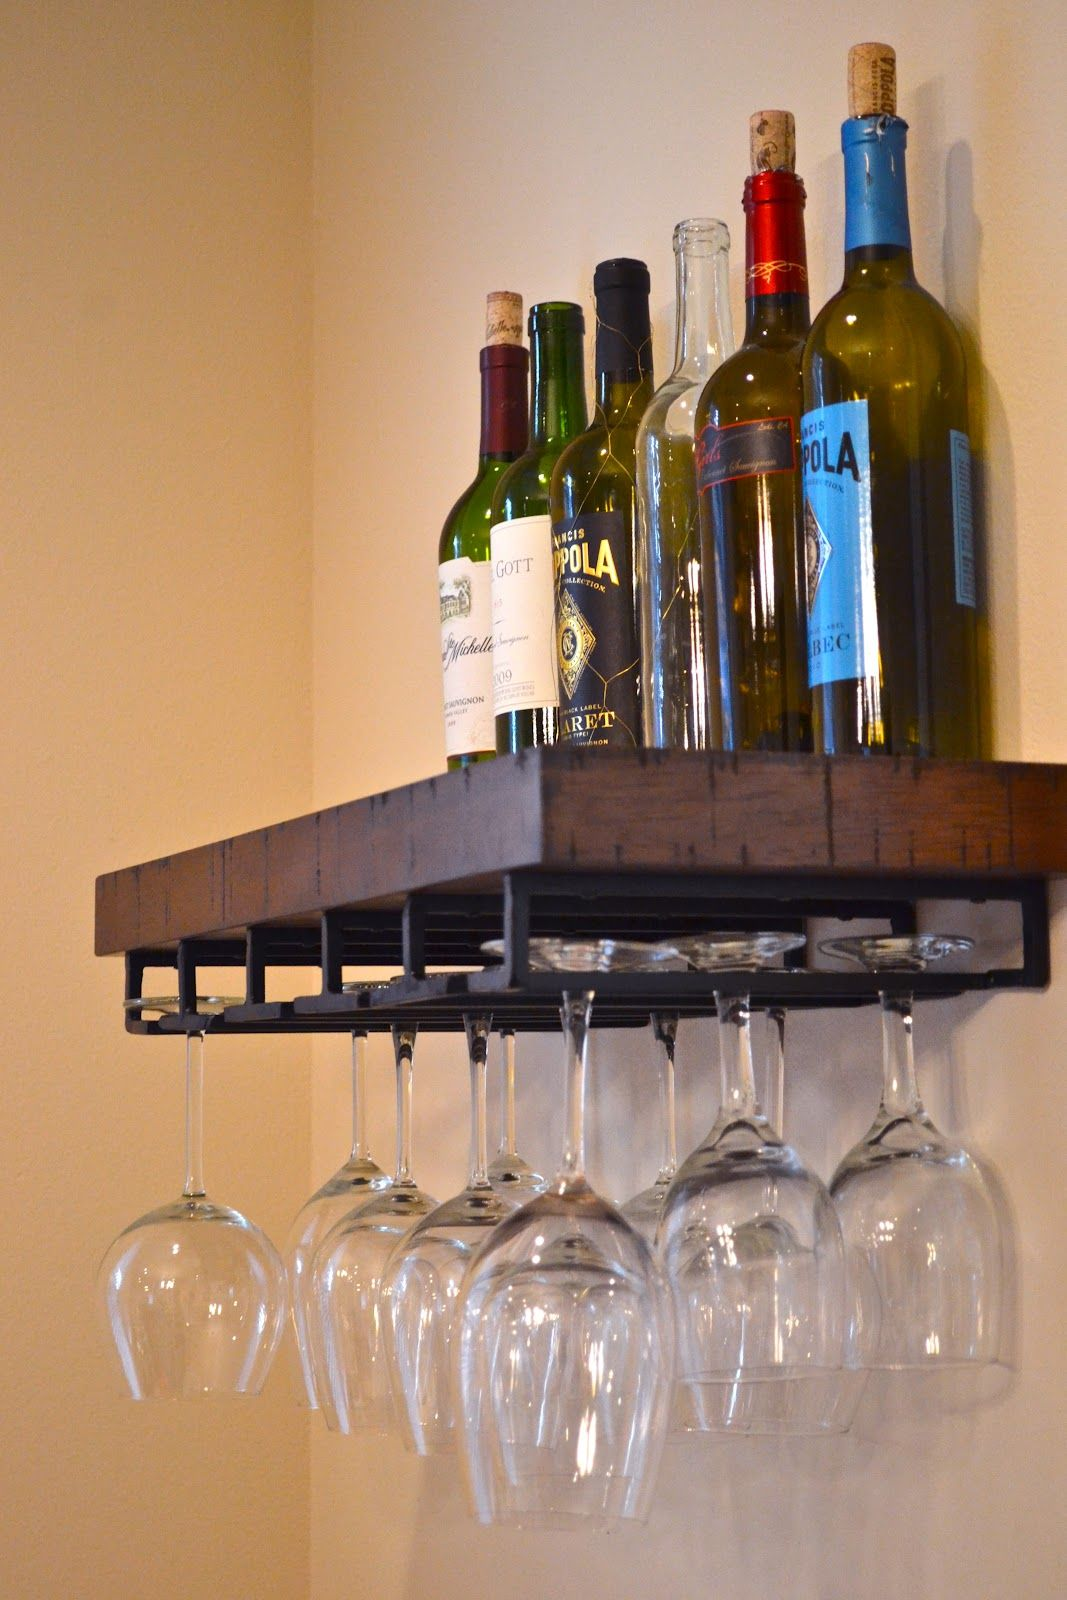 Postagious Pottery Barn Wine Glass Rack Diy Wine Glass Diy Wine Glass Rack Wine Glass Decor